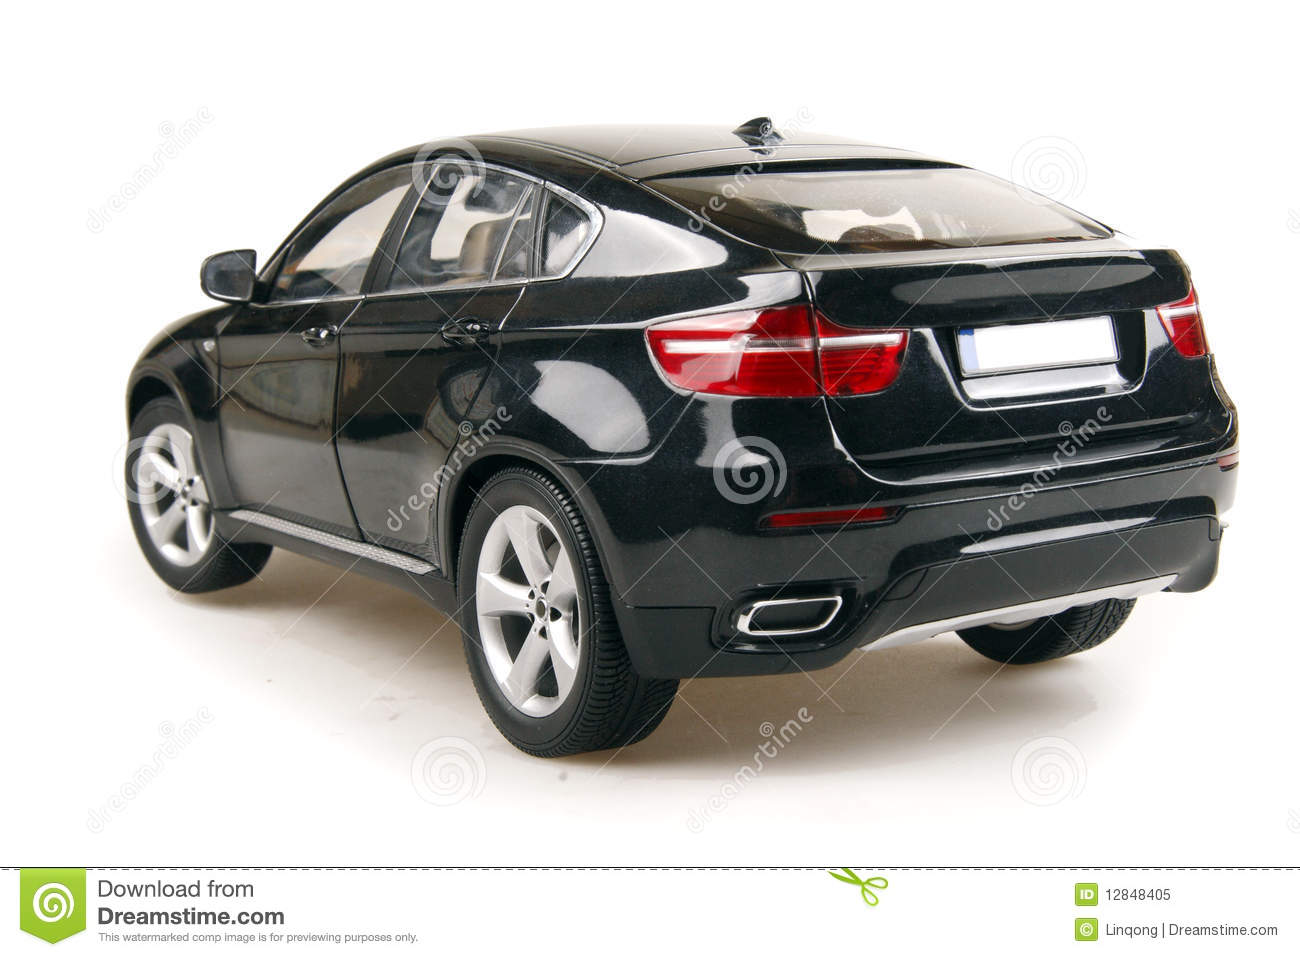 Expensive Car For Sale Or Gift Royalty Free Stock Image: SUV Car Royalty Free Stock Photo